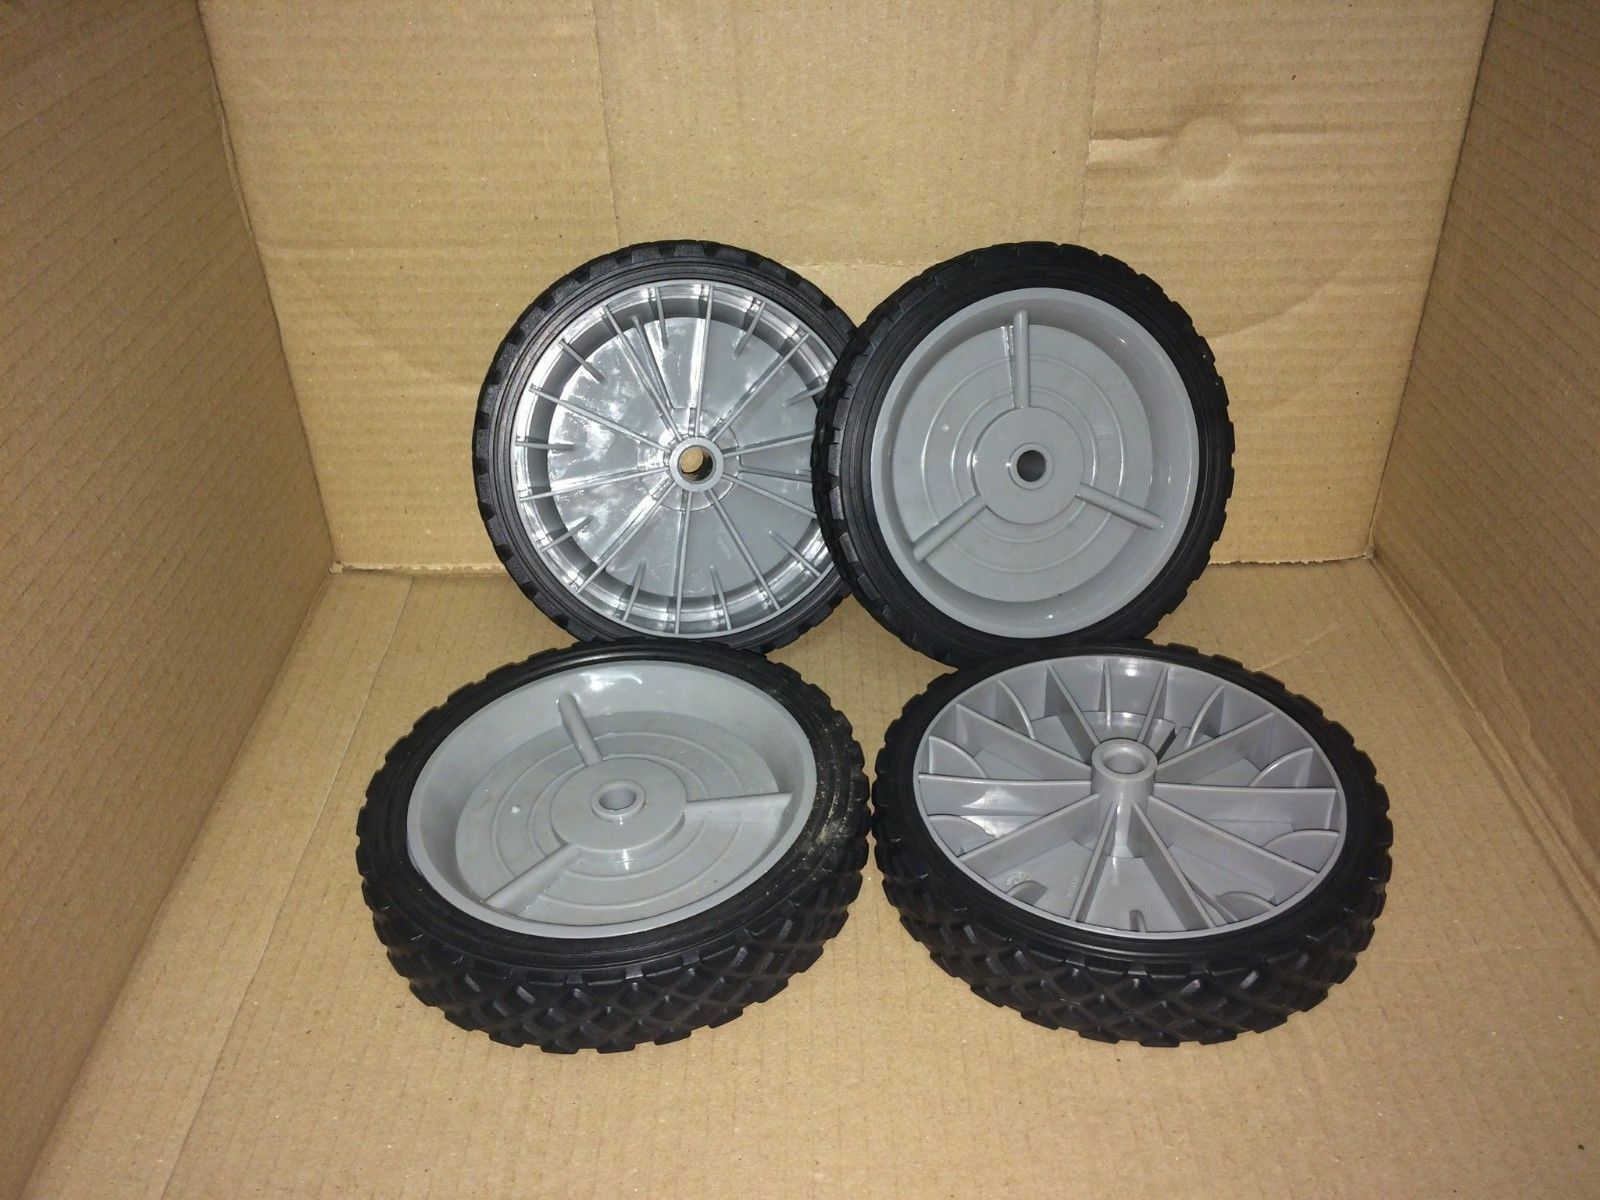 Craftsman Walk Behind Push Lawn Mower Wheels Set Of 4 Fits Most Any Wheel Belt Diagram And Parts List For Walkbehindlawnmower 1 1free Shipping